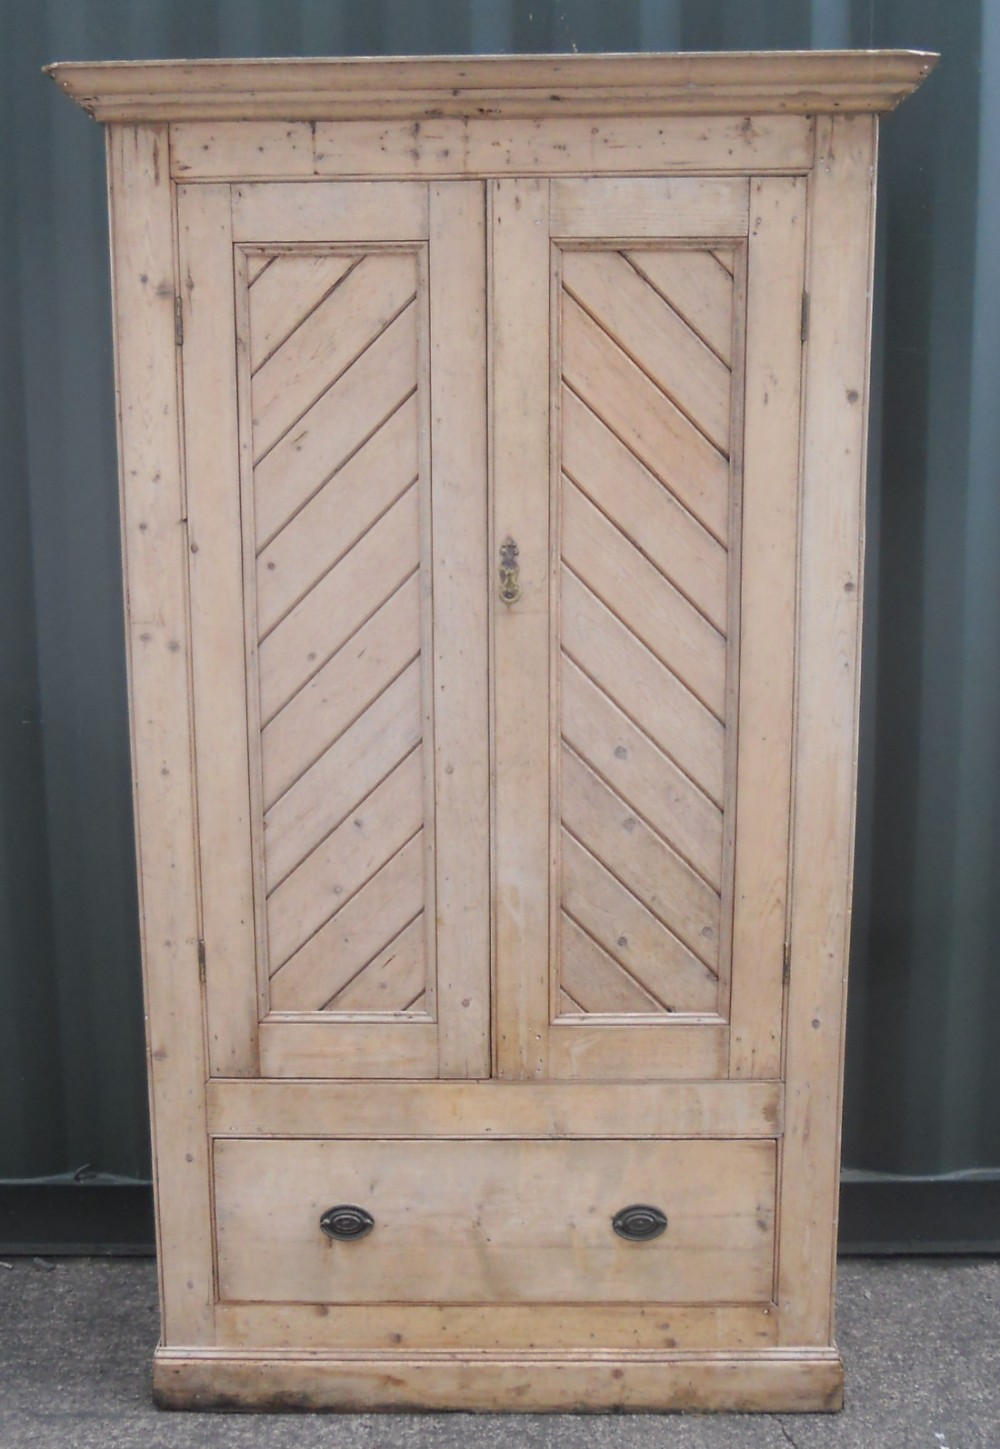 Edwardian Narrow Pine Hanging Wardrobe 411040 Sellingantiques Co Uk